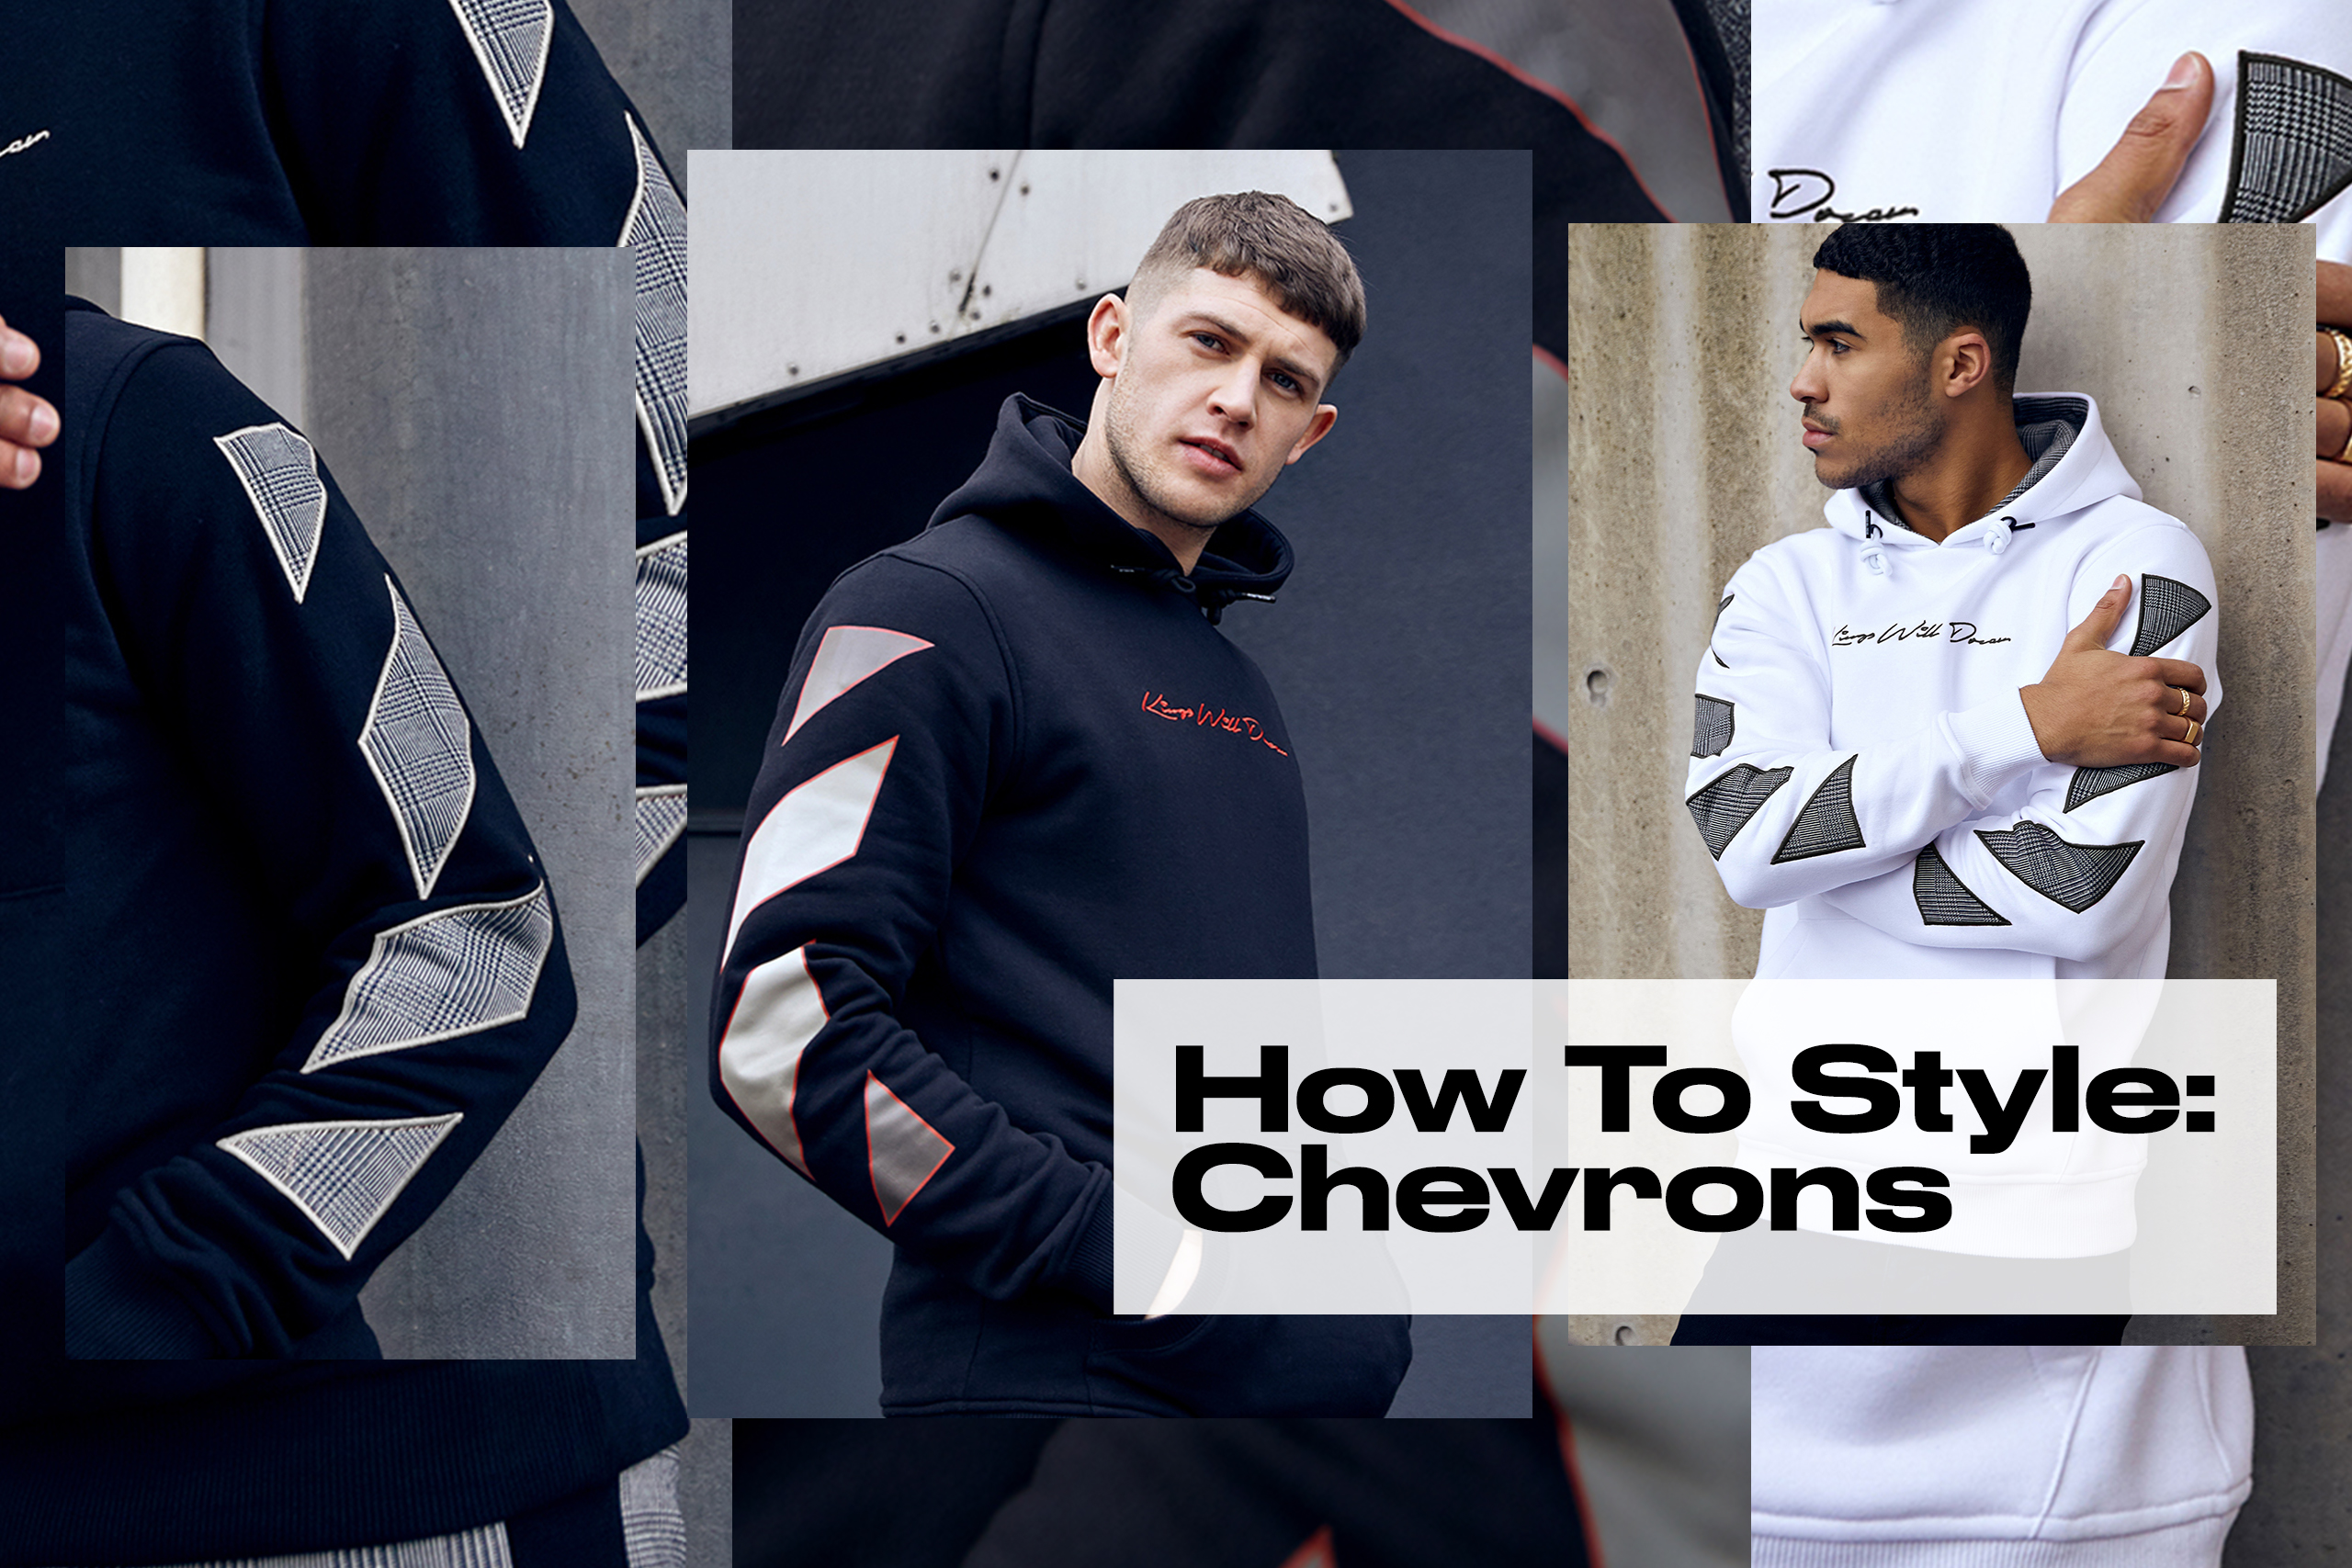 How To Style: Chevrons